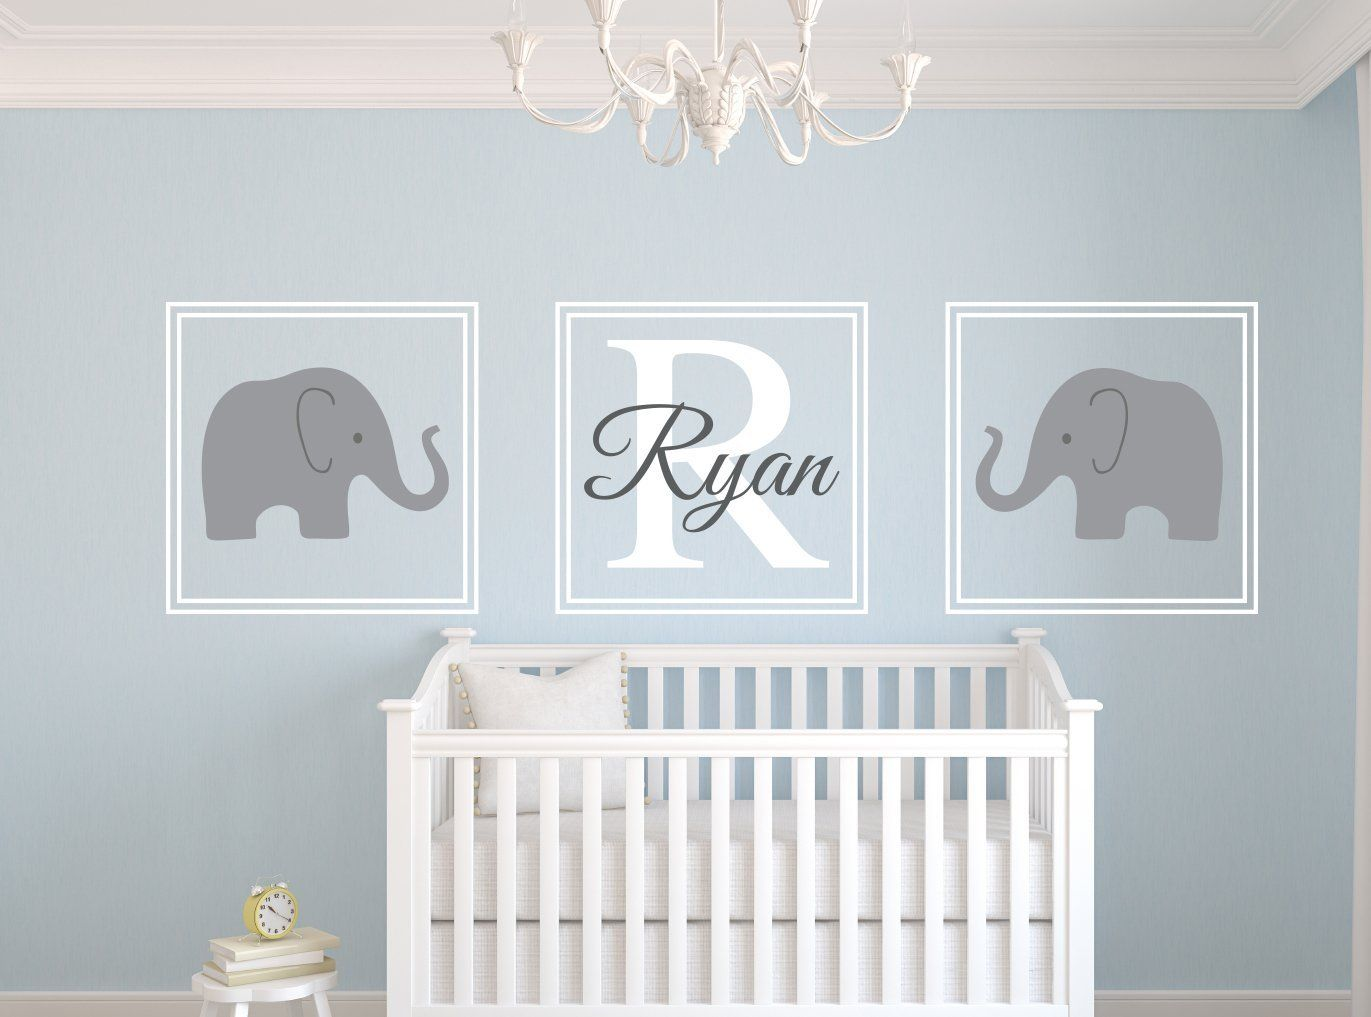 Baby Blue Bedroom Ideas Modern Gray Elephant Nursery Lamp With Light Blue Trim